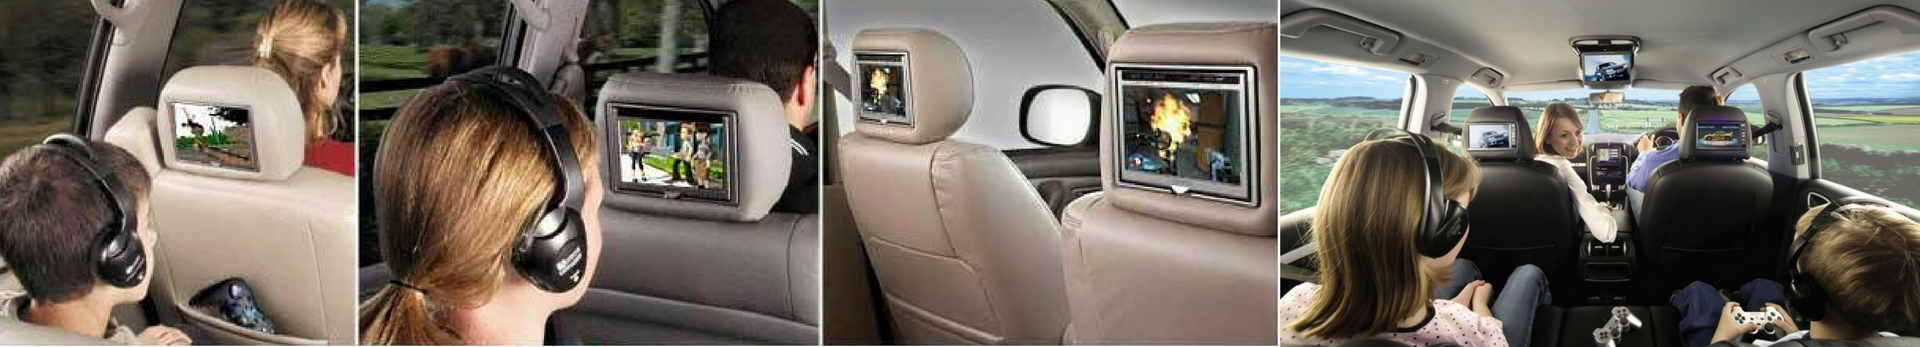 In Car Rear Seat Entertainment options at Stereo West Autotoys 402-393-2100